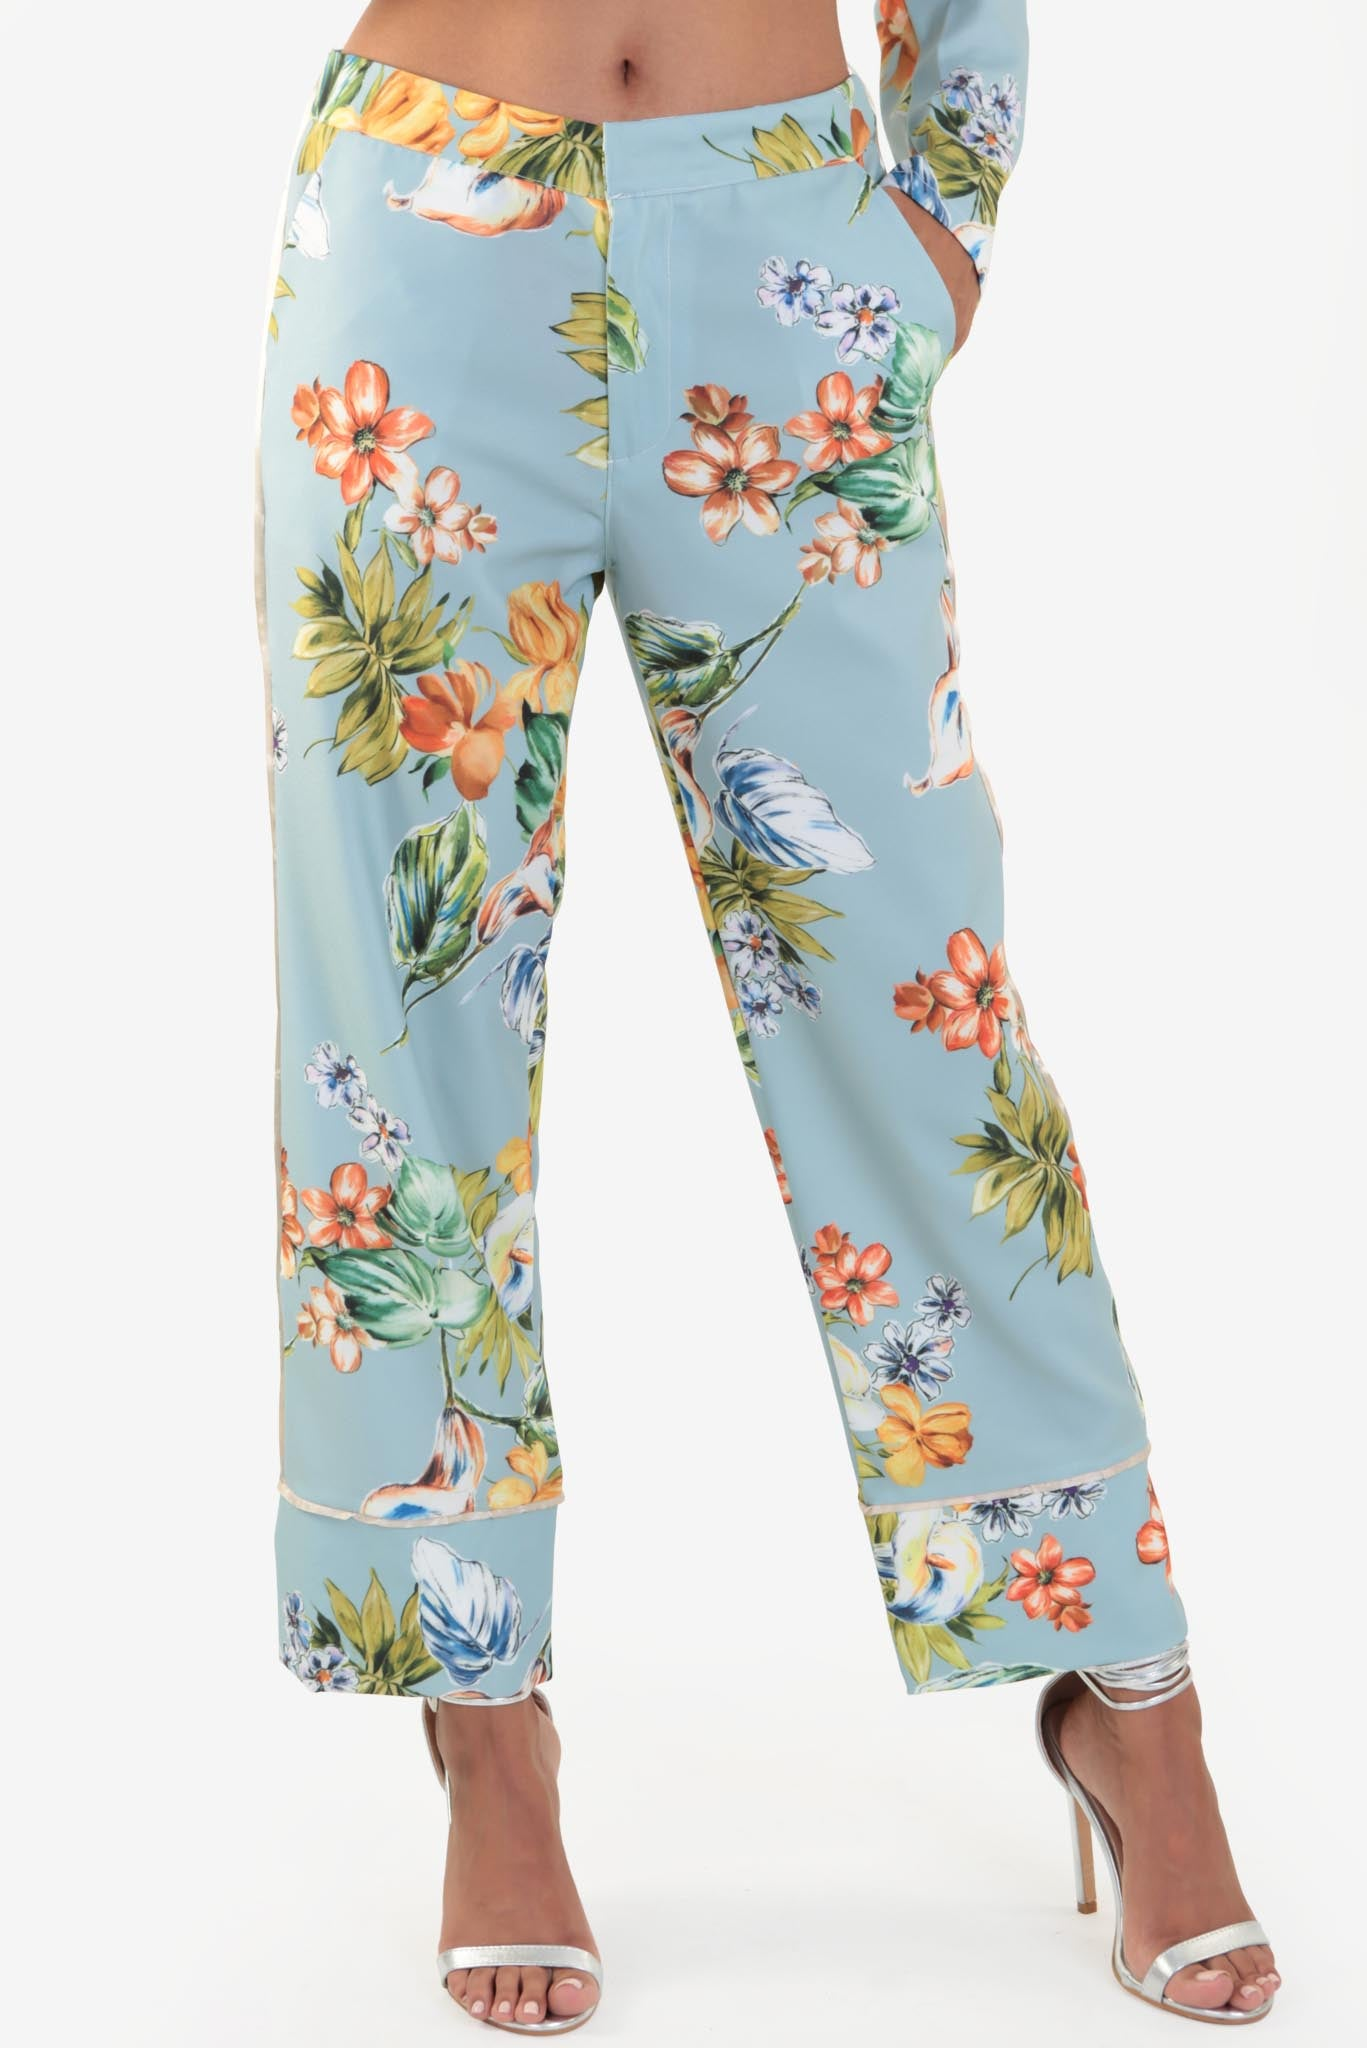 Co-ord Set Pants - Floral | Raw Orange